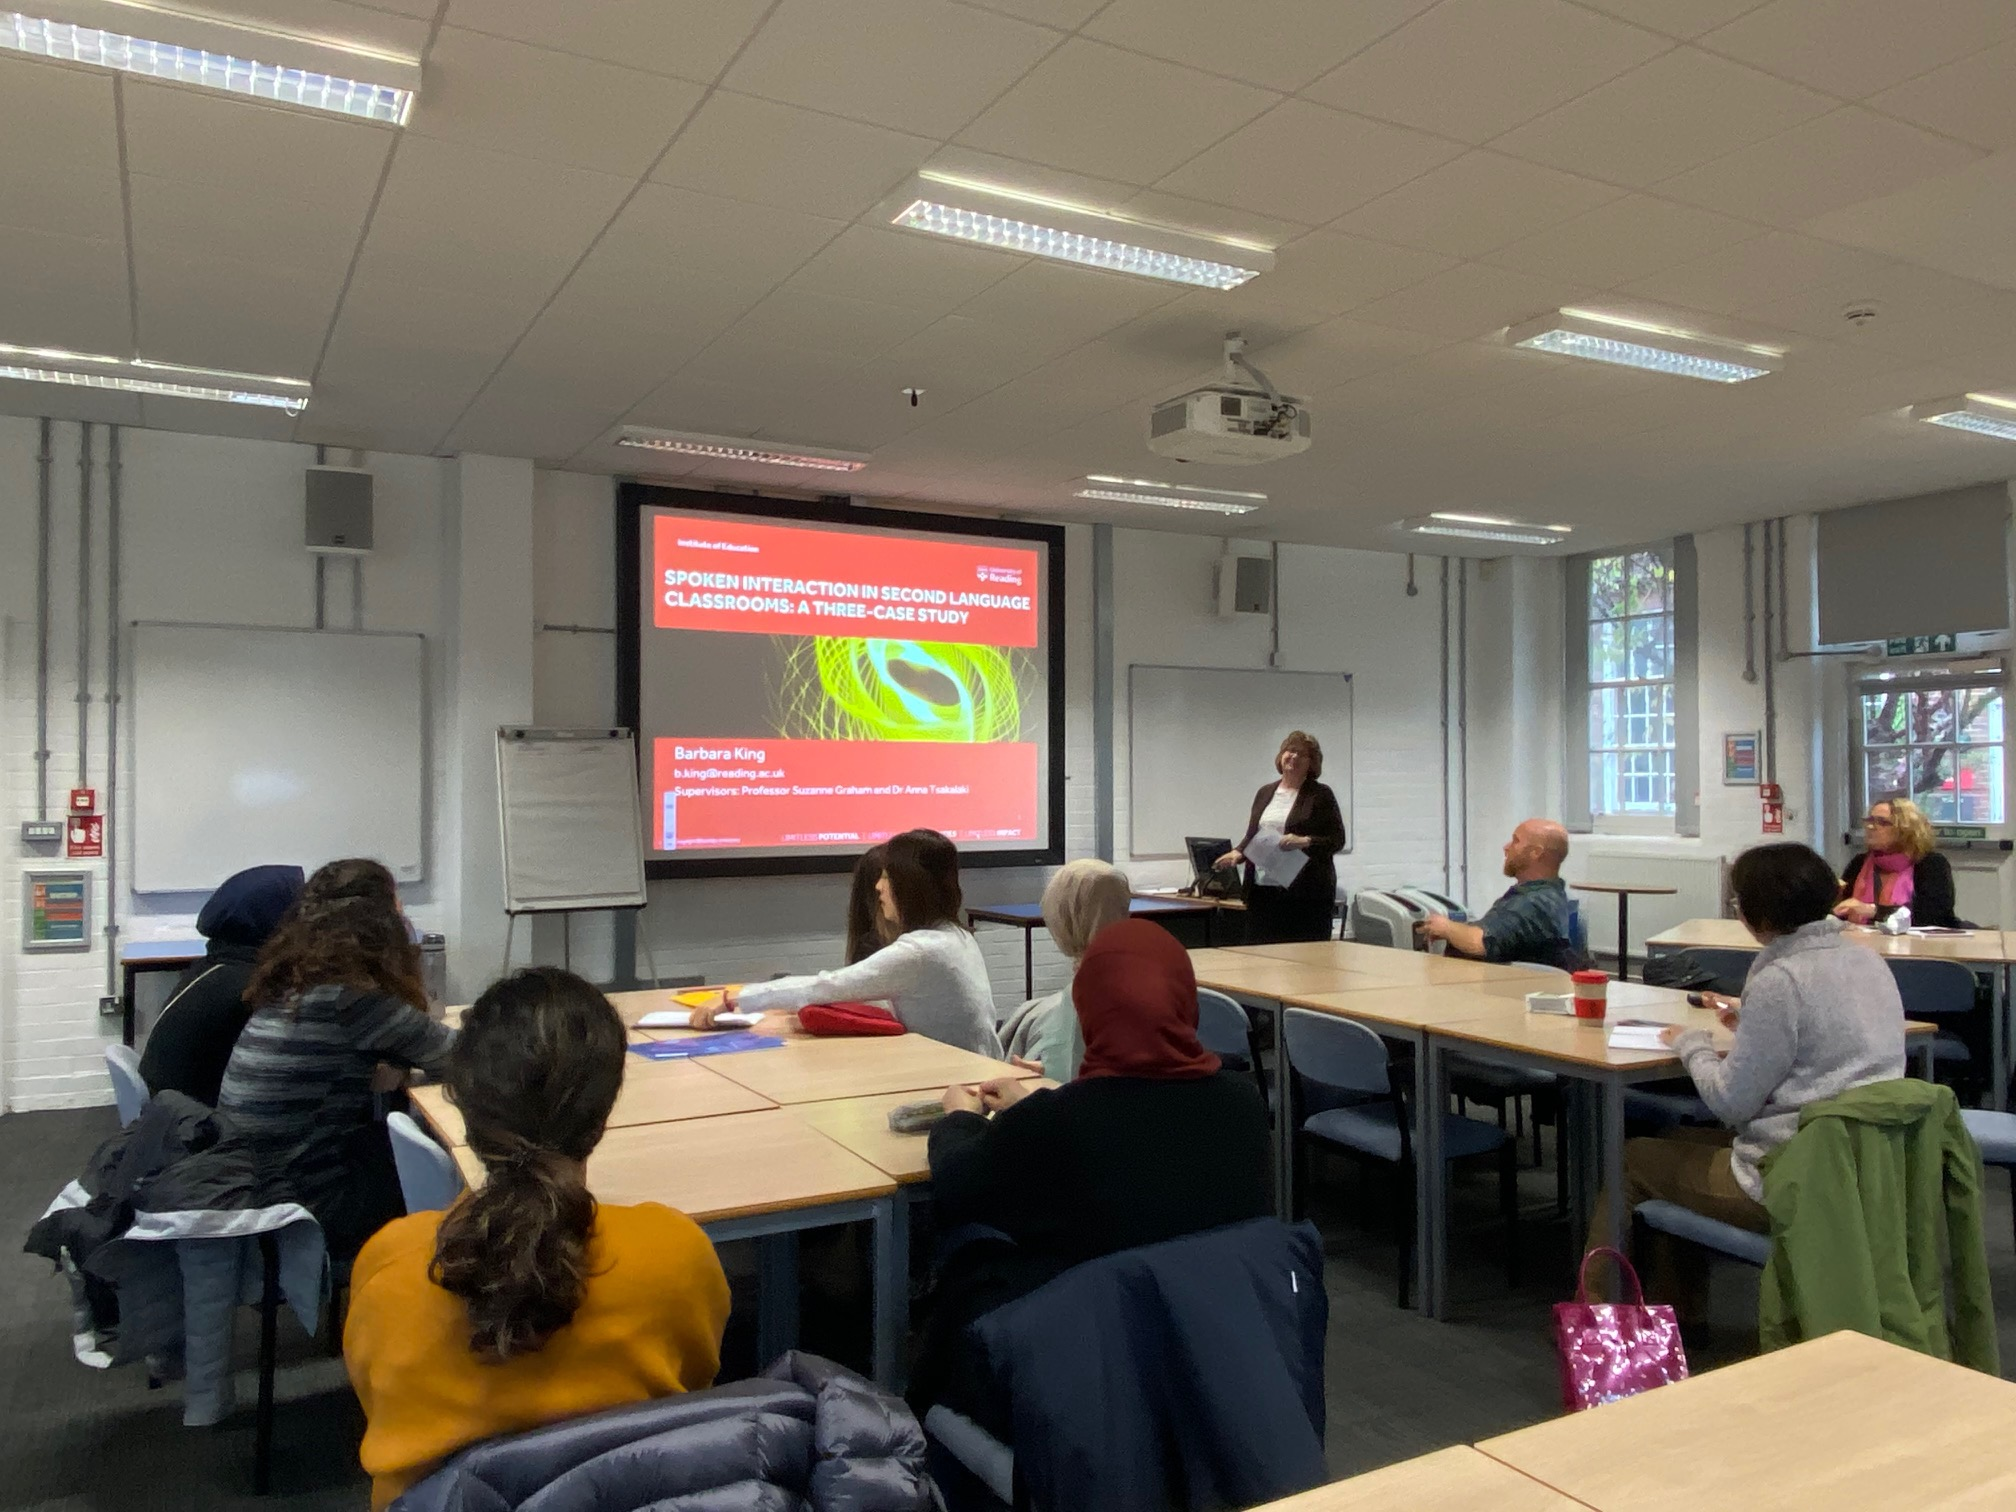 NEWS – IoE doctoral students shared their research as part of the IoE lunchtime research seminar series